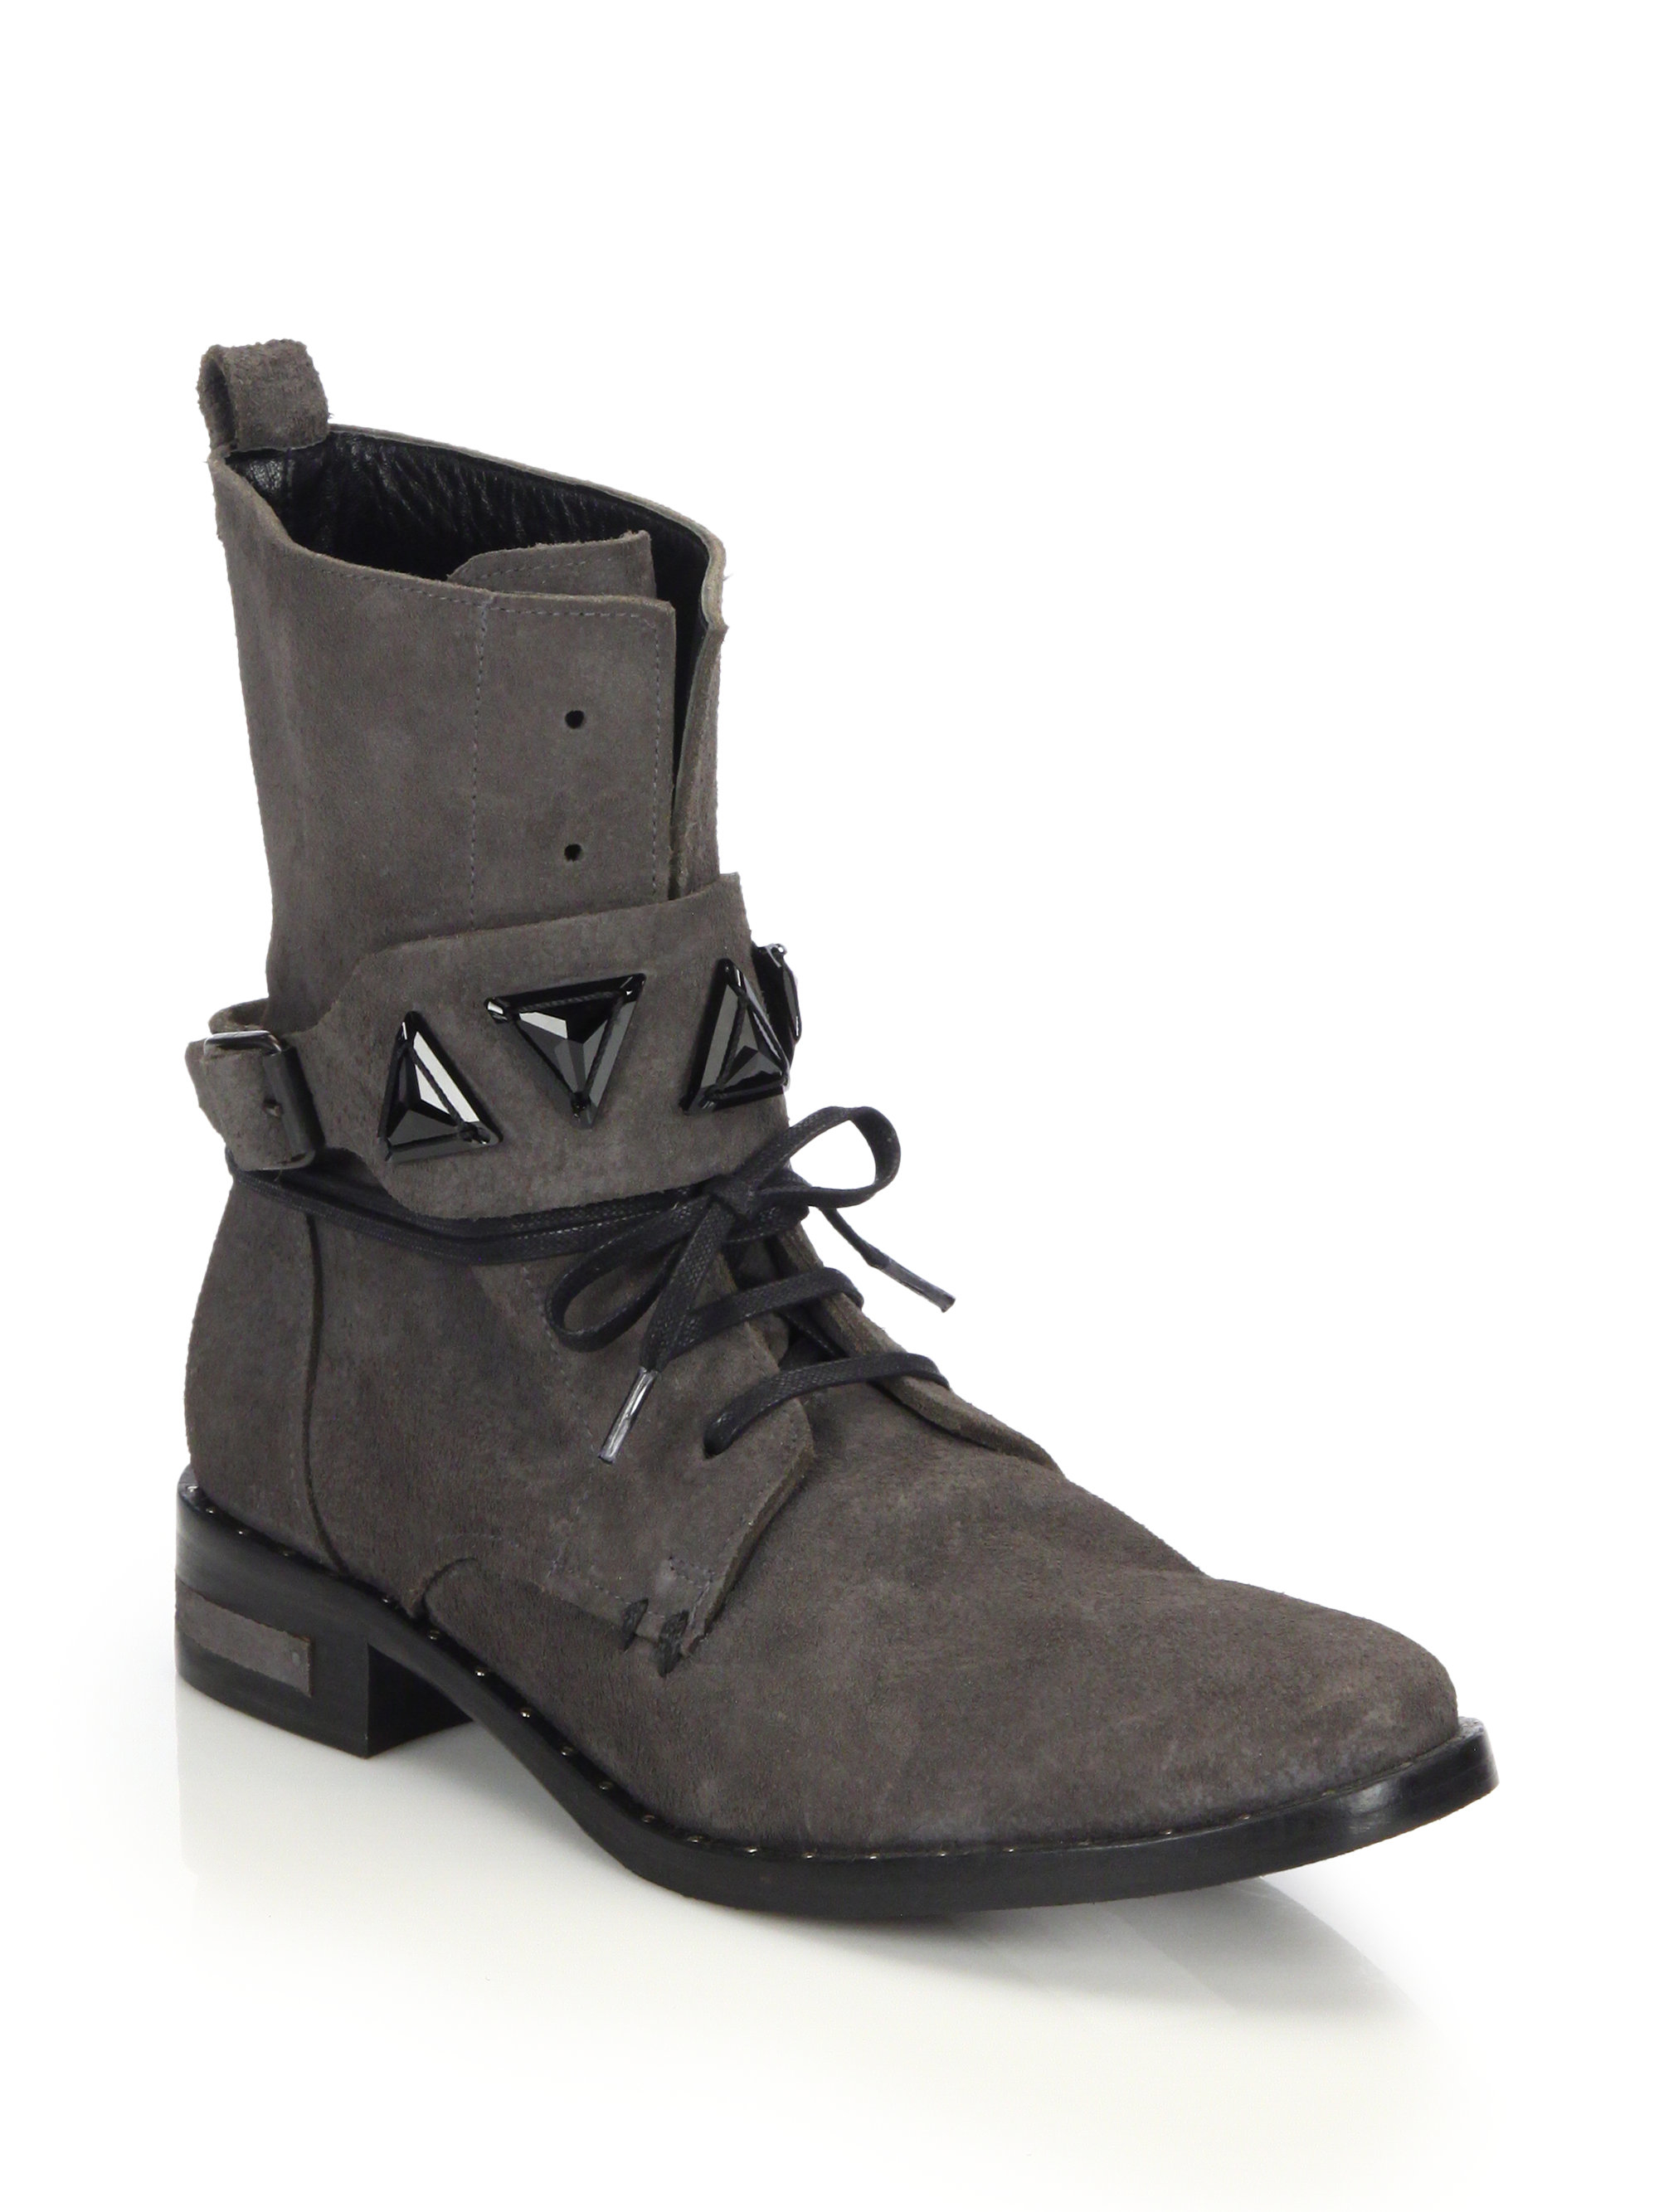 Creative West Blvd West Blvd Cario Combat Women Leather Gray Combat